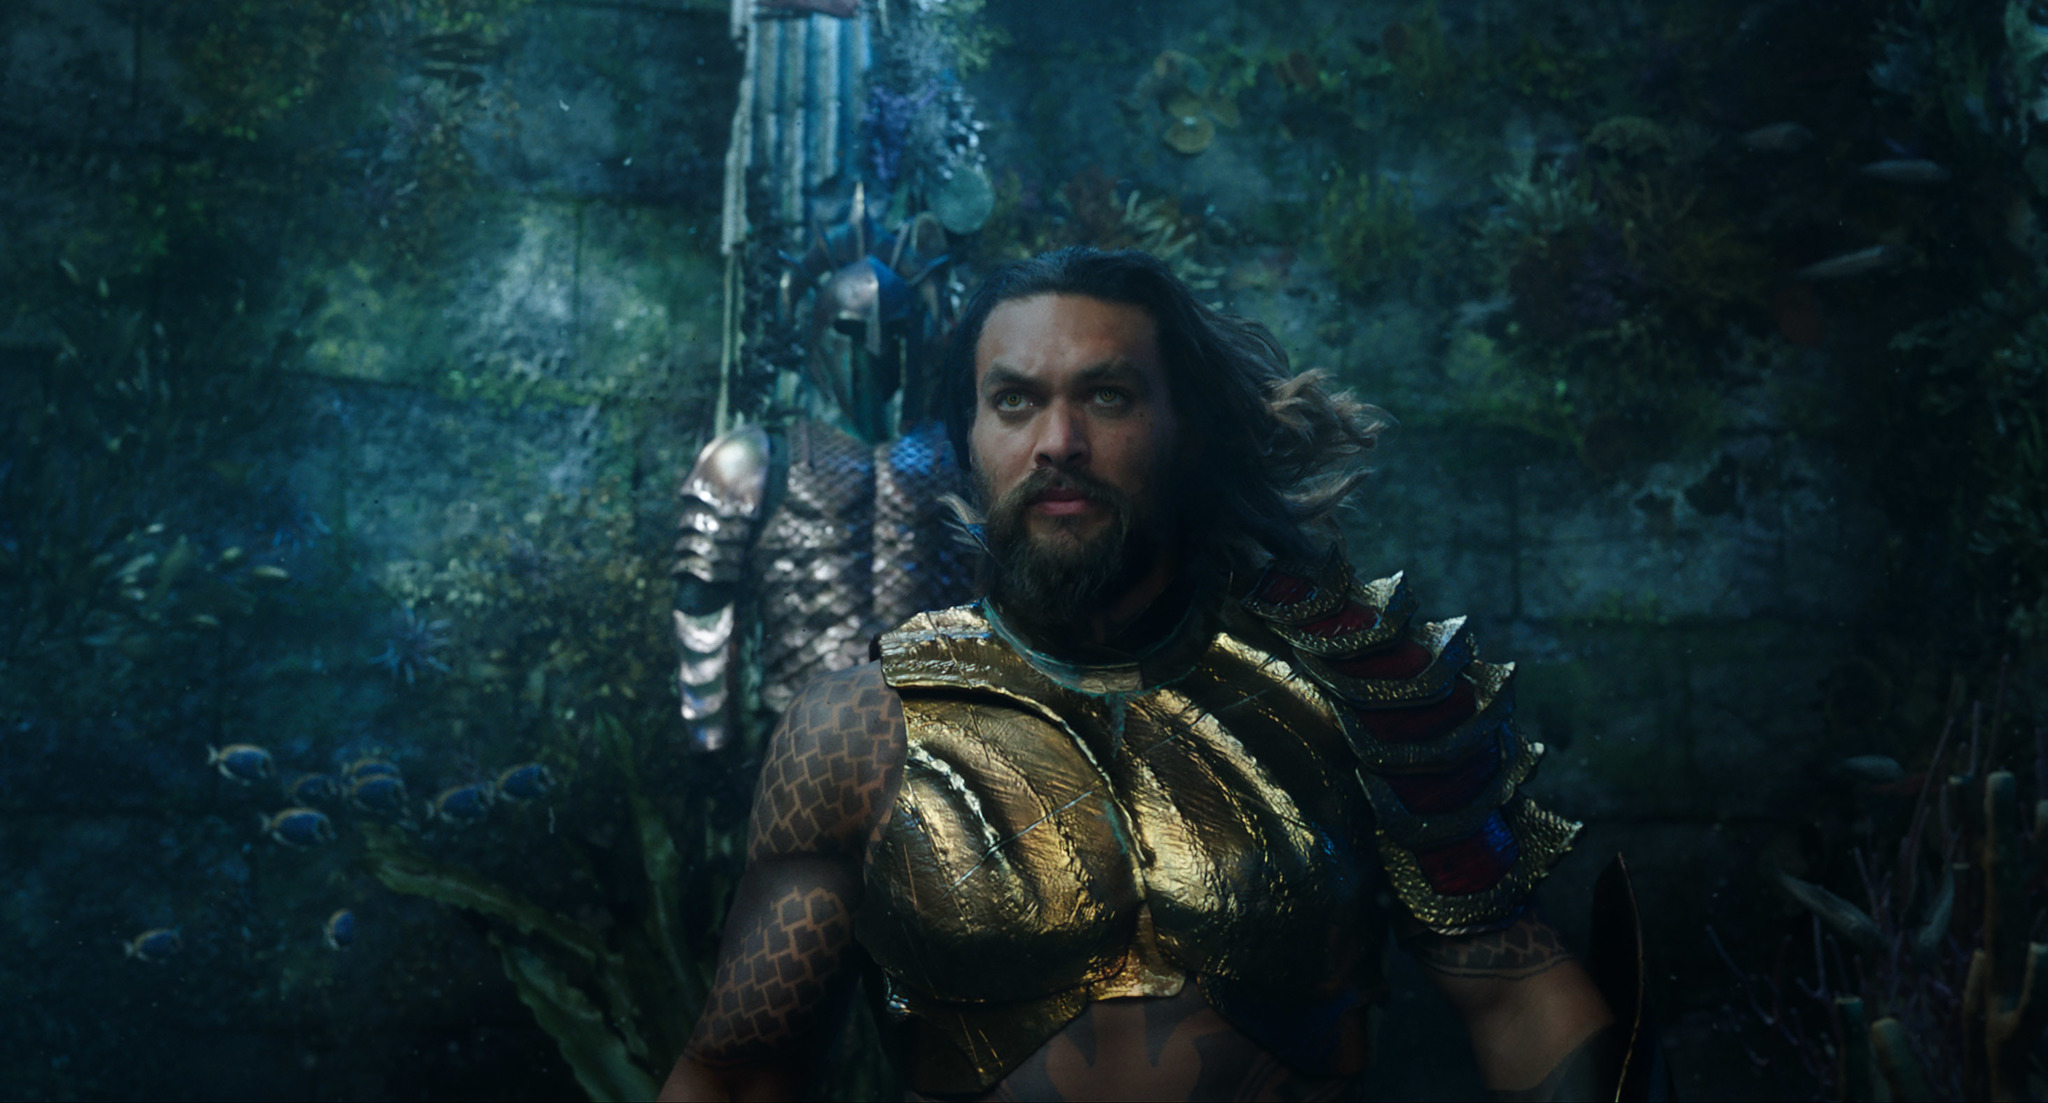 aquaman review james wan can t salvage a wannabe thor movie